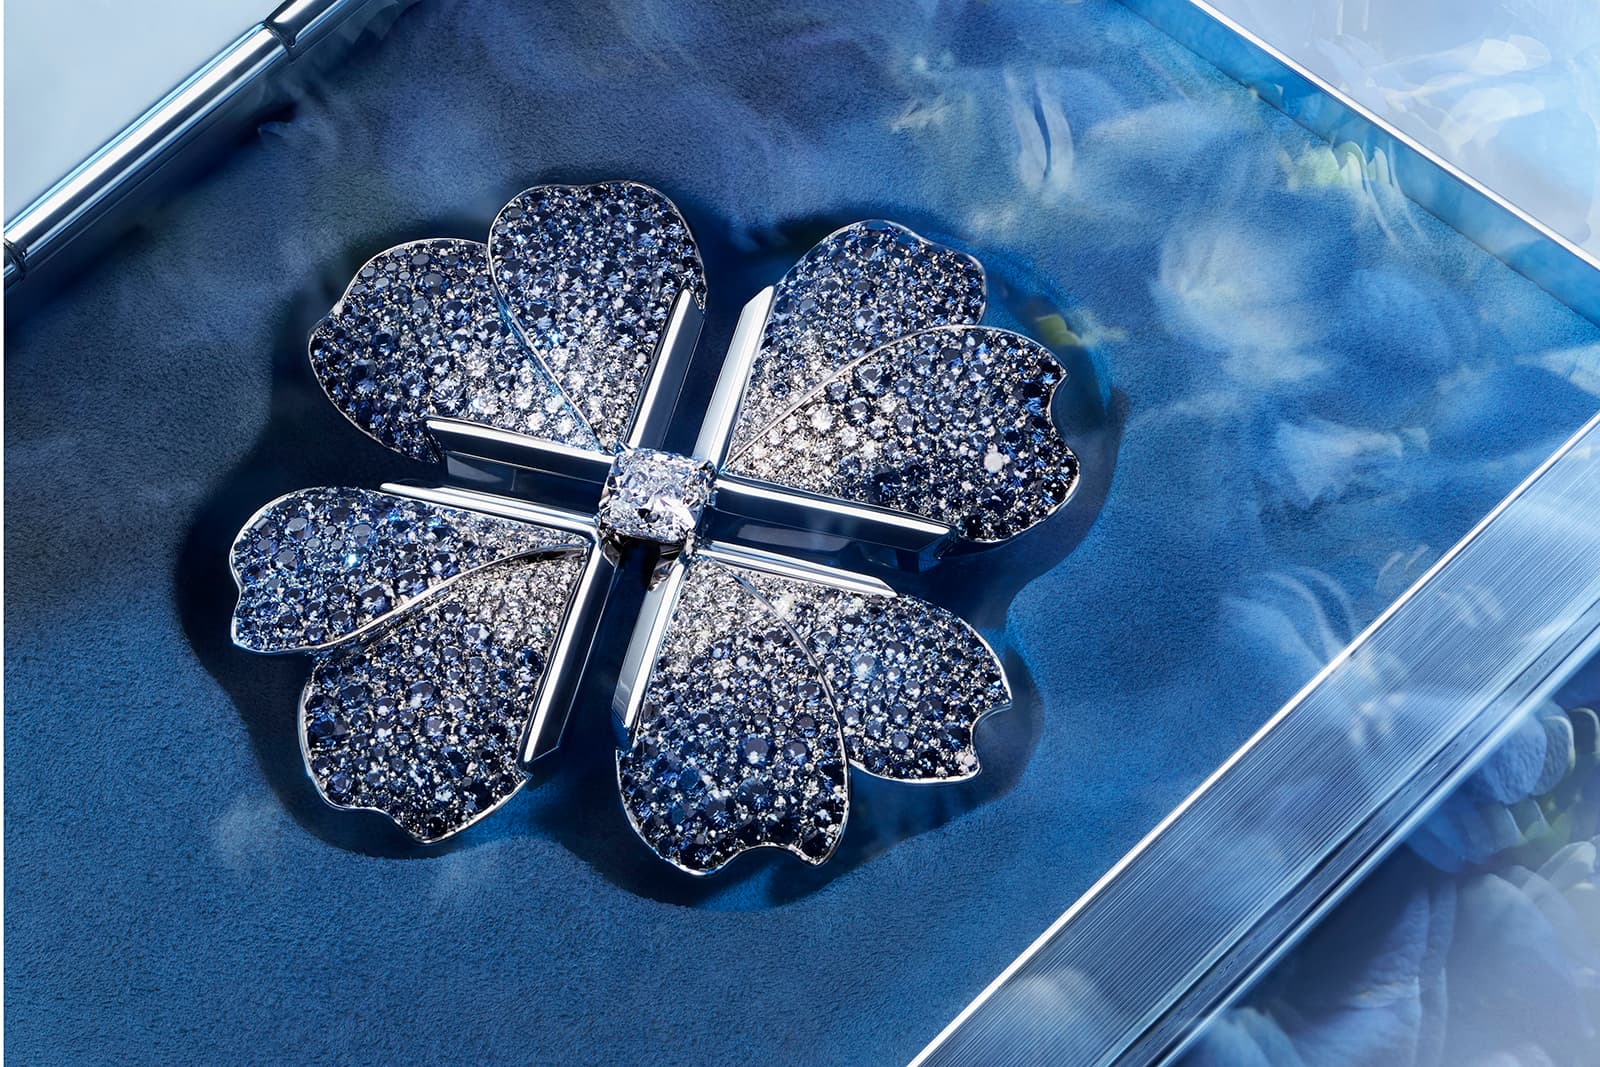 Tiffany&Co. Blue Book 2019 collection brooch with over 2ct cushion cut diamond, sapphires and diamonds in platinum